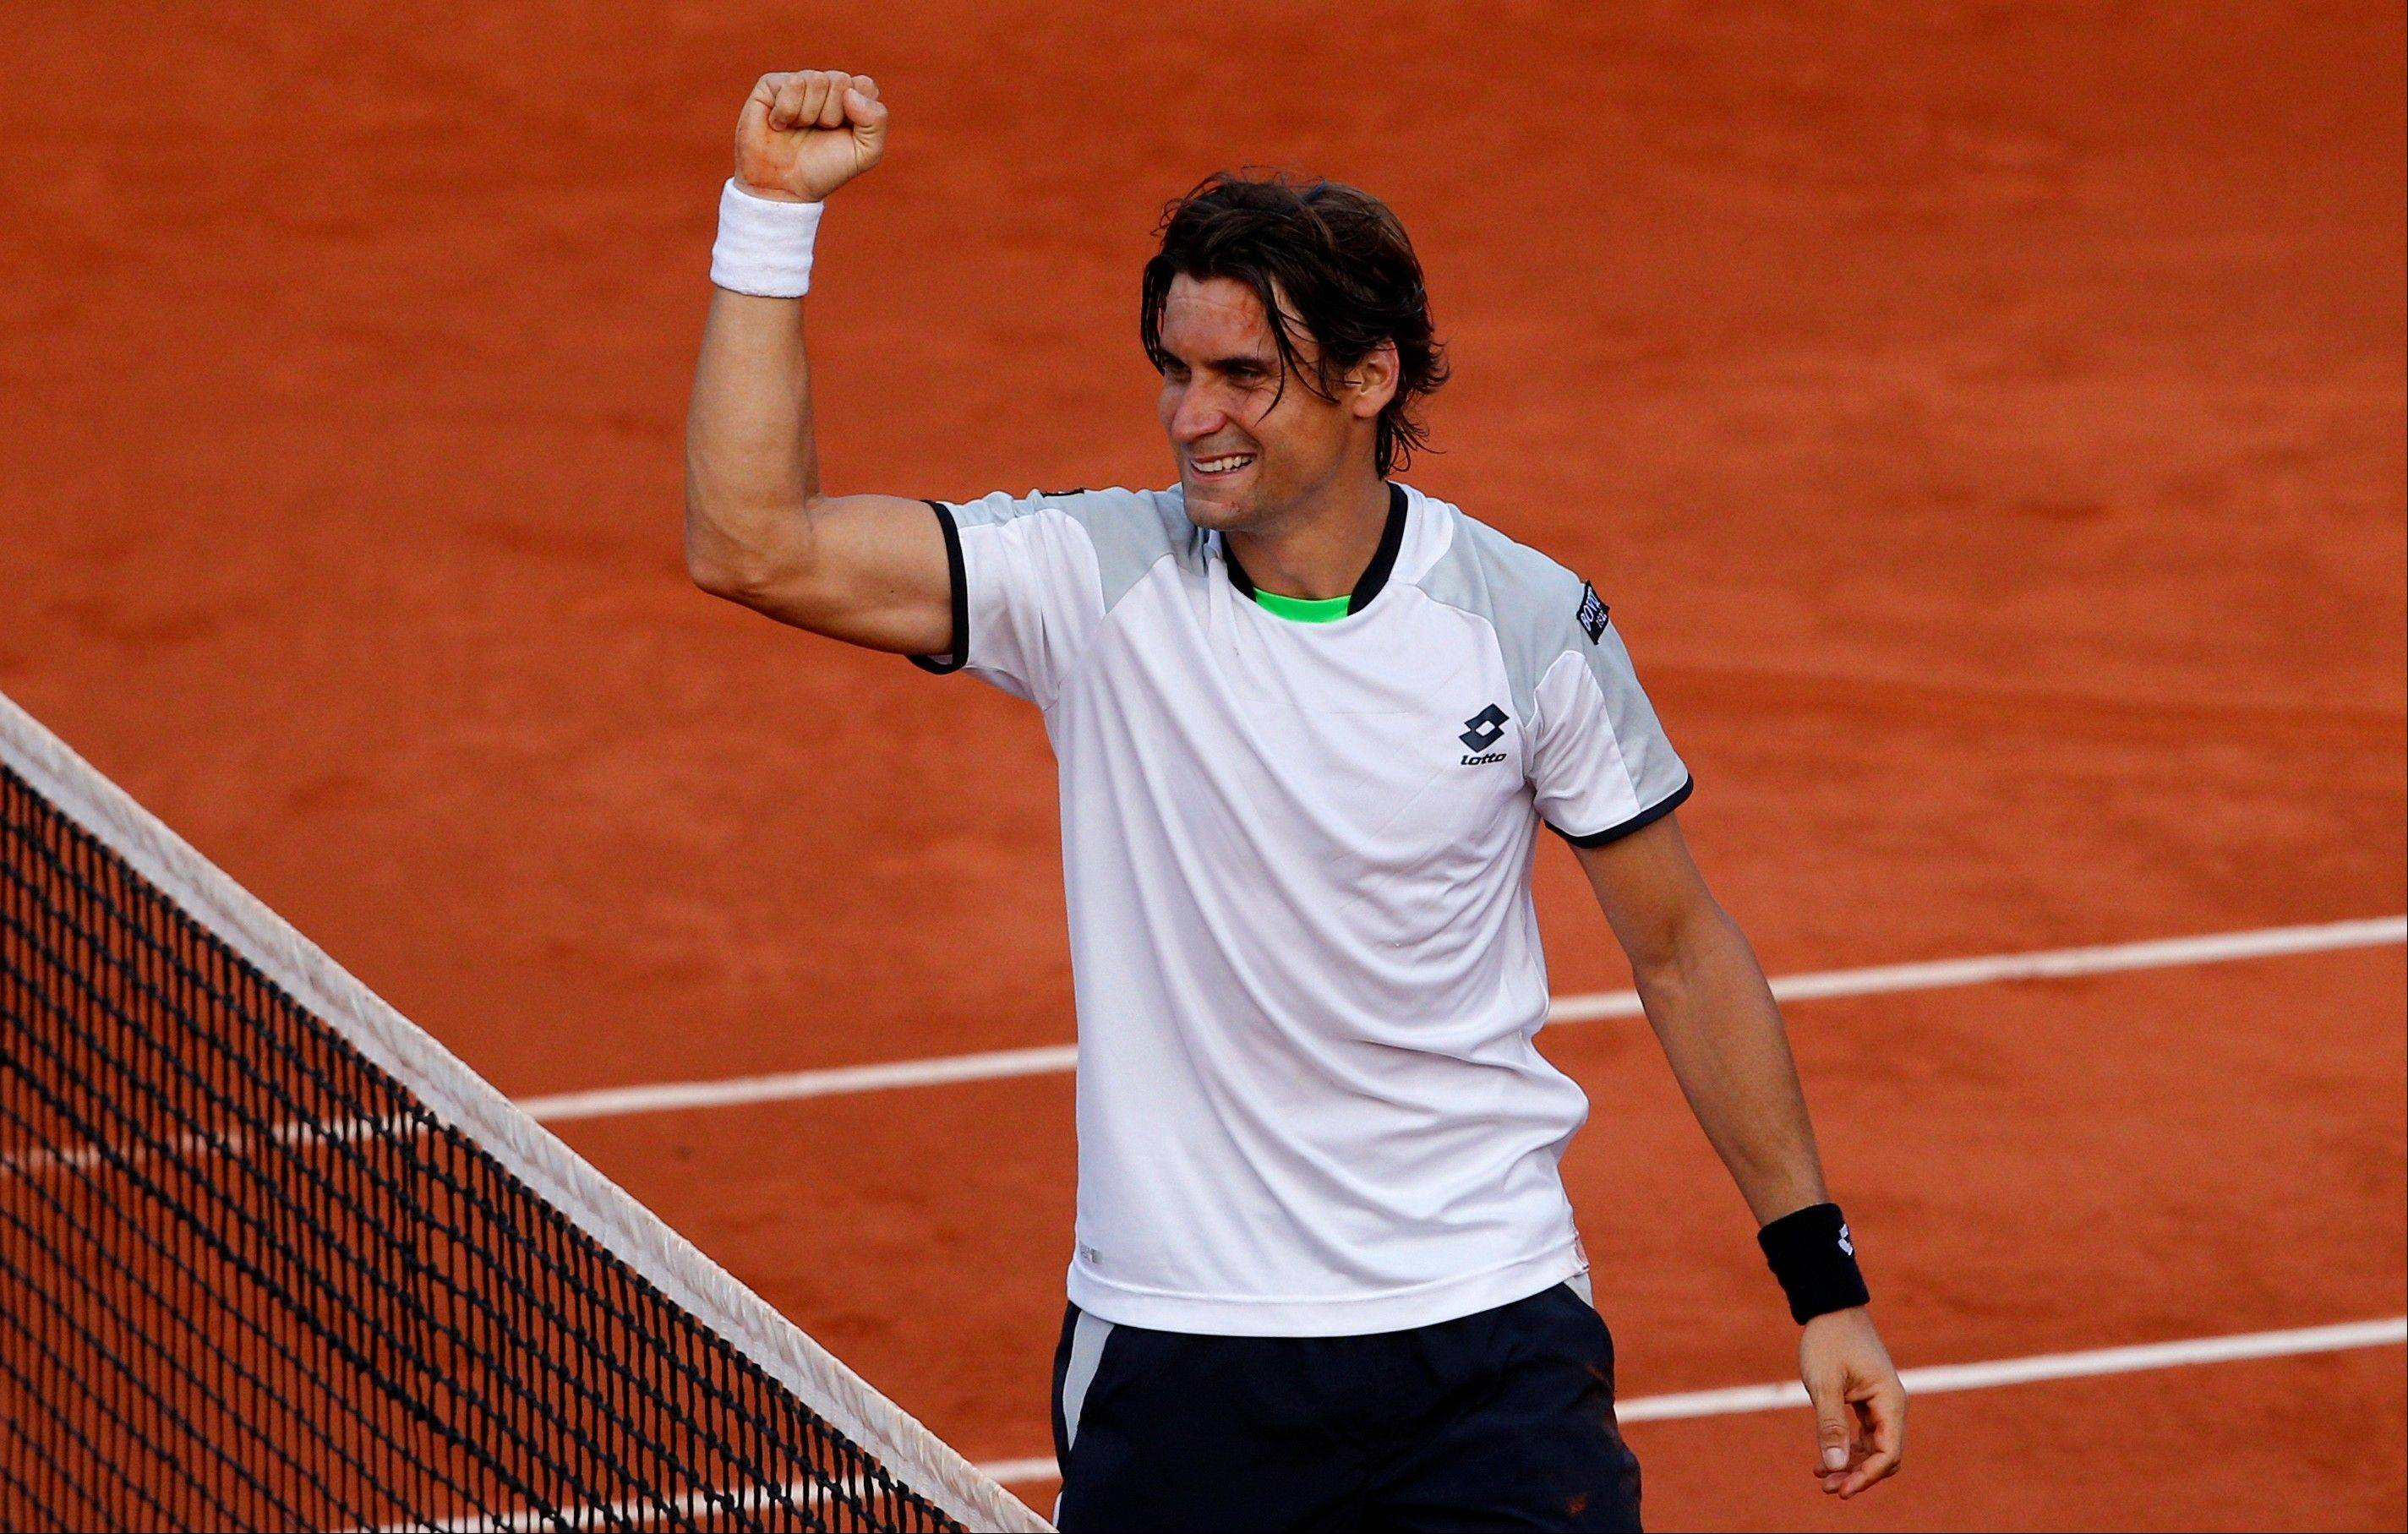 David Ferrer clenches his fist Friday after defeating France's Jo-Wilfried Tsonga during their semifinal match of the French Open at the Roland Garros stadium in Paris. Ferrer won 6-1, 7-6, 6-2.